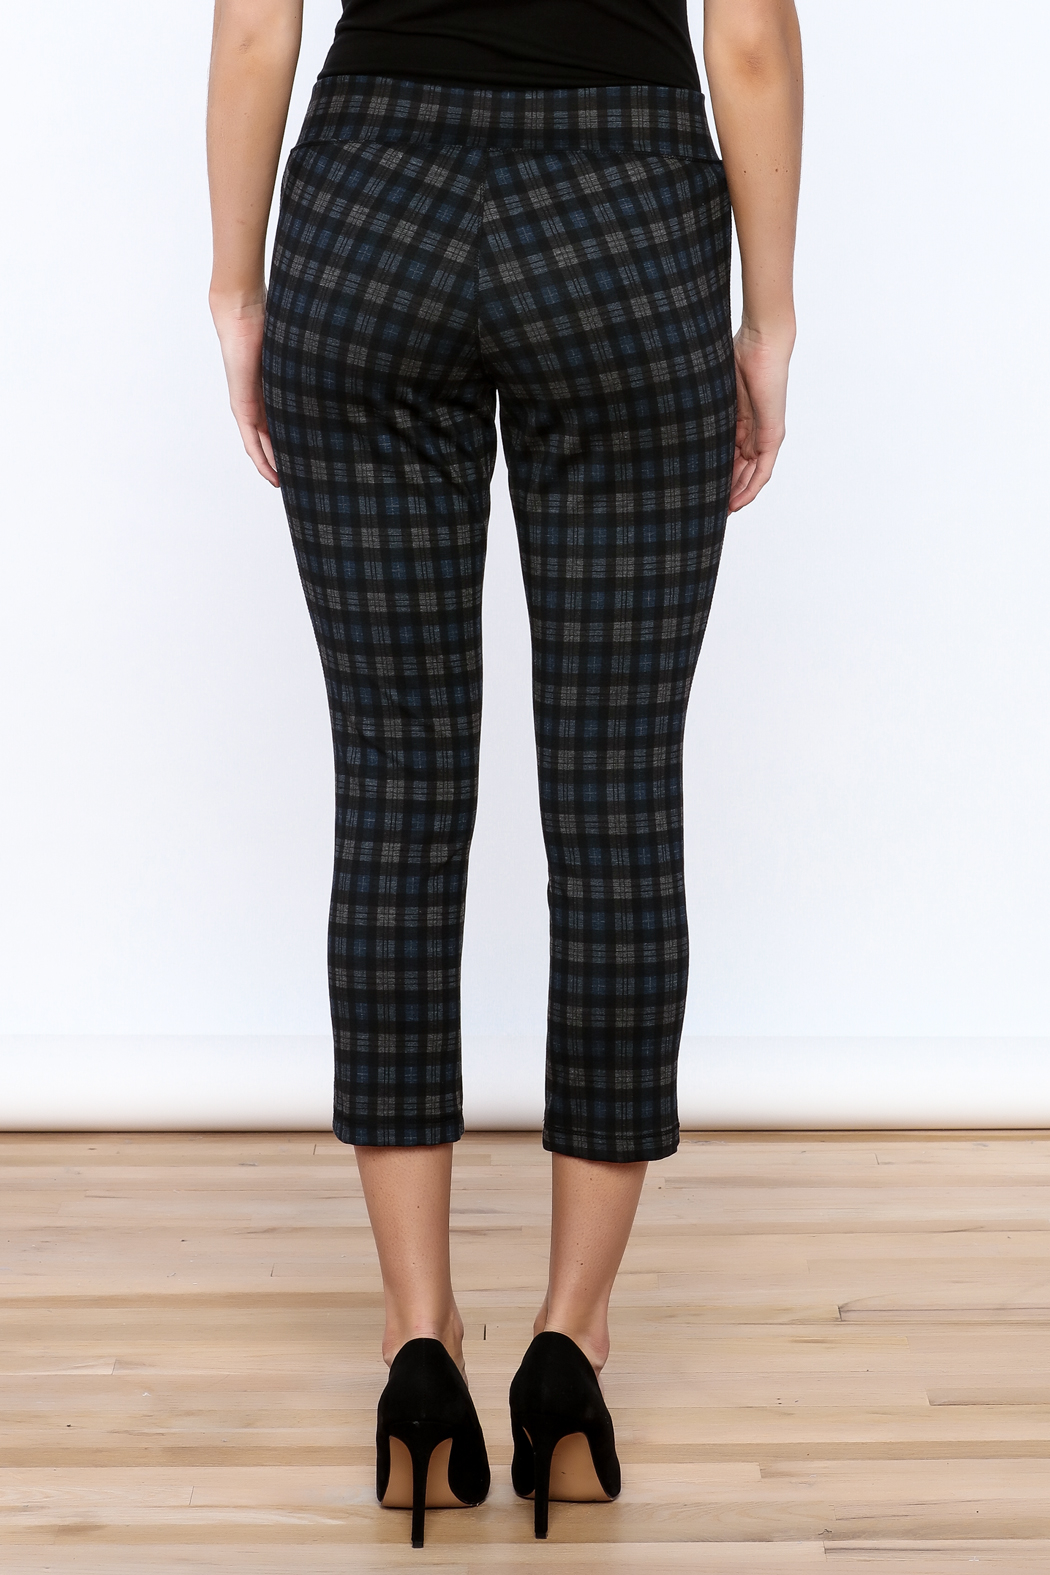 Find great deals on eBay for plaid dress pants. Shop with confidence. Skip to main content. eBay: RYAN SEACREST $ NEW Wool Blend Modern-Fit Plaid Mens Dress Pants 36W 30L See more like this. Mens Regular Fit Brown & Blue Plaid Flat Front Wool Silk Blend Dress Pants. Brand New. $ Buy It Now +$ shipping.